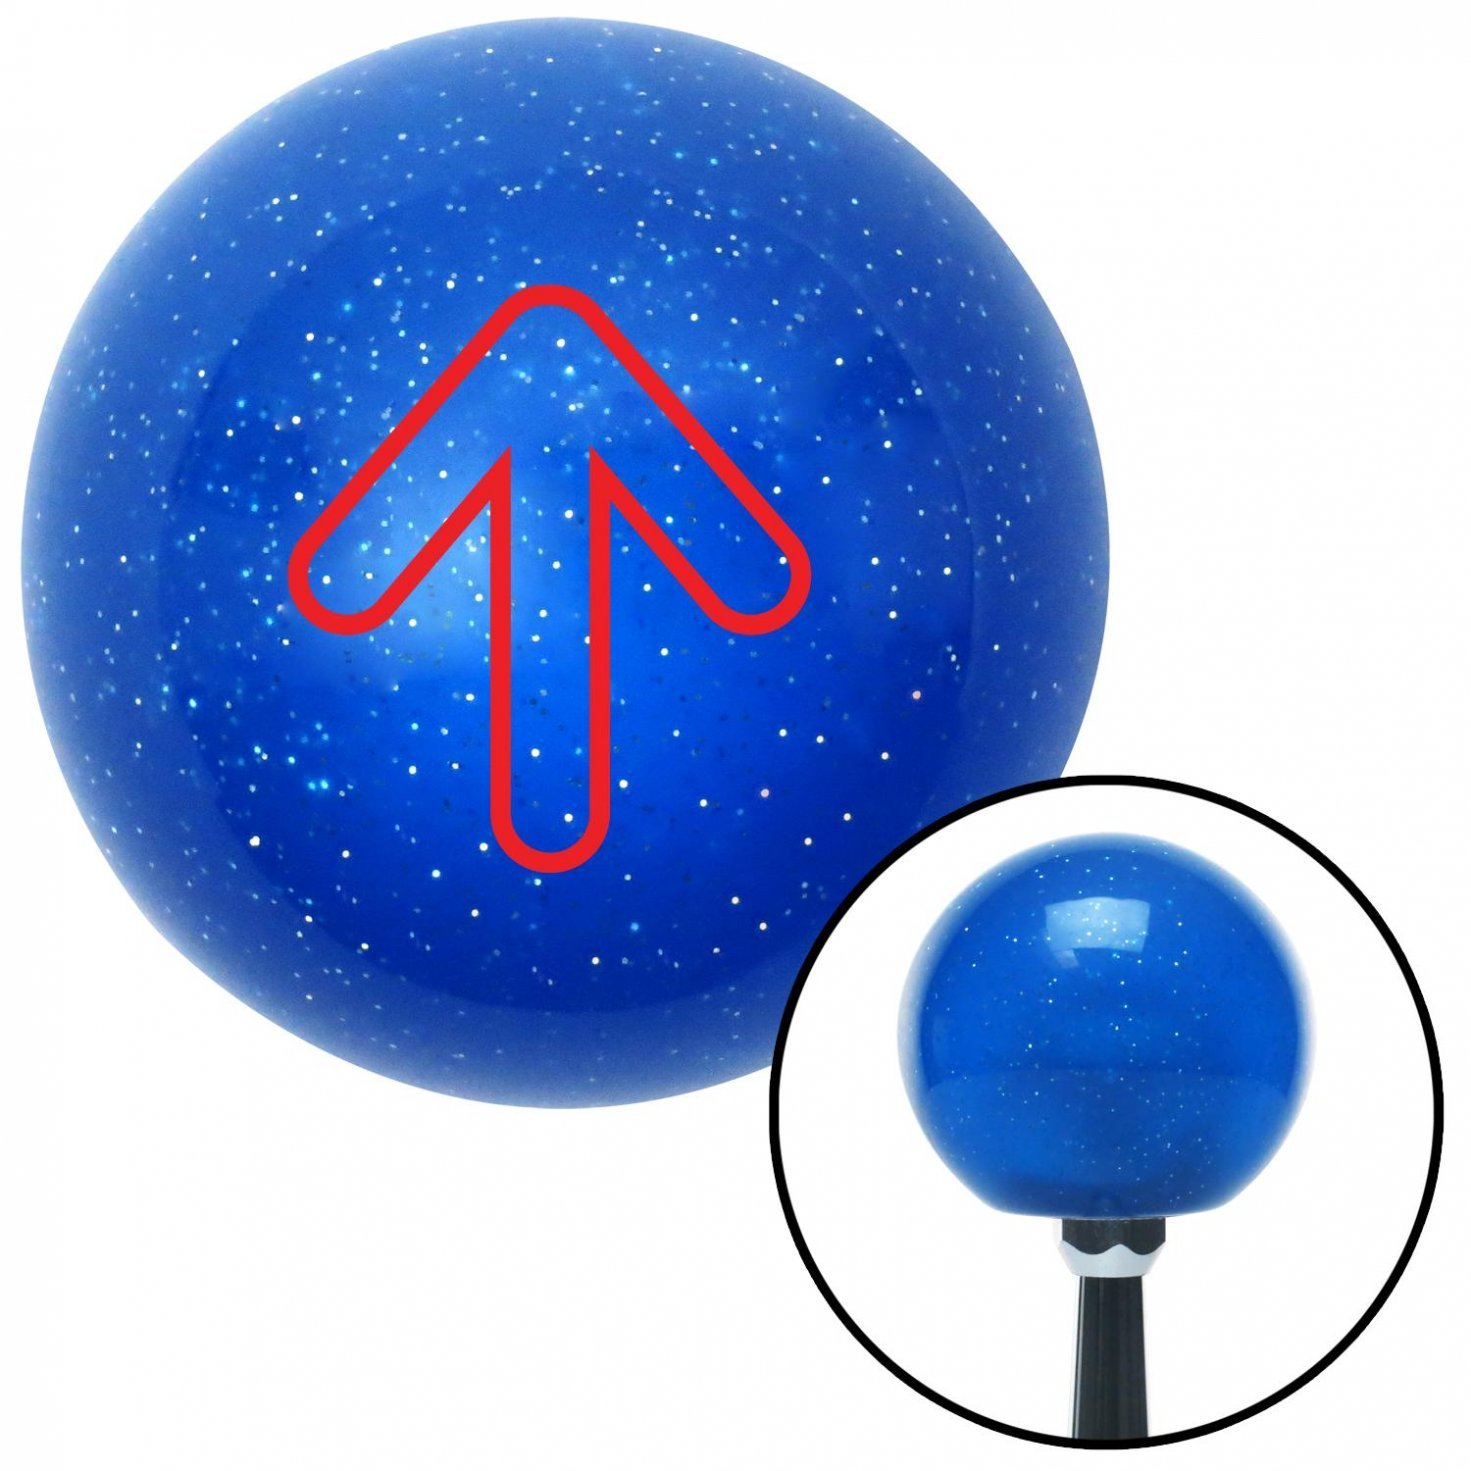 American Shifter 22102 Blue Metal Flake Shift Knob with 16mm x 1.5 Insert Red Bubble Directional Arrow Up